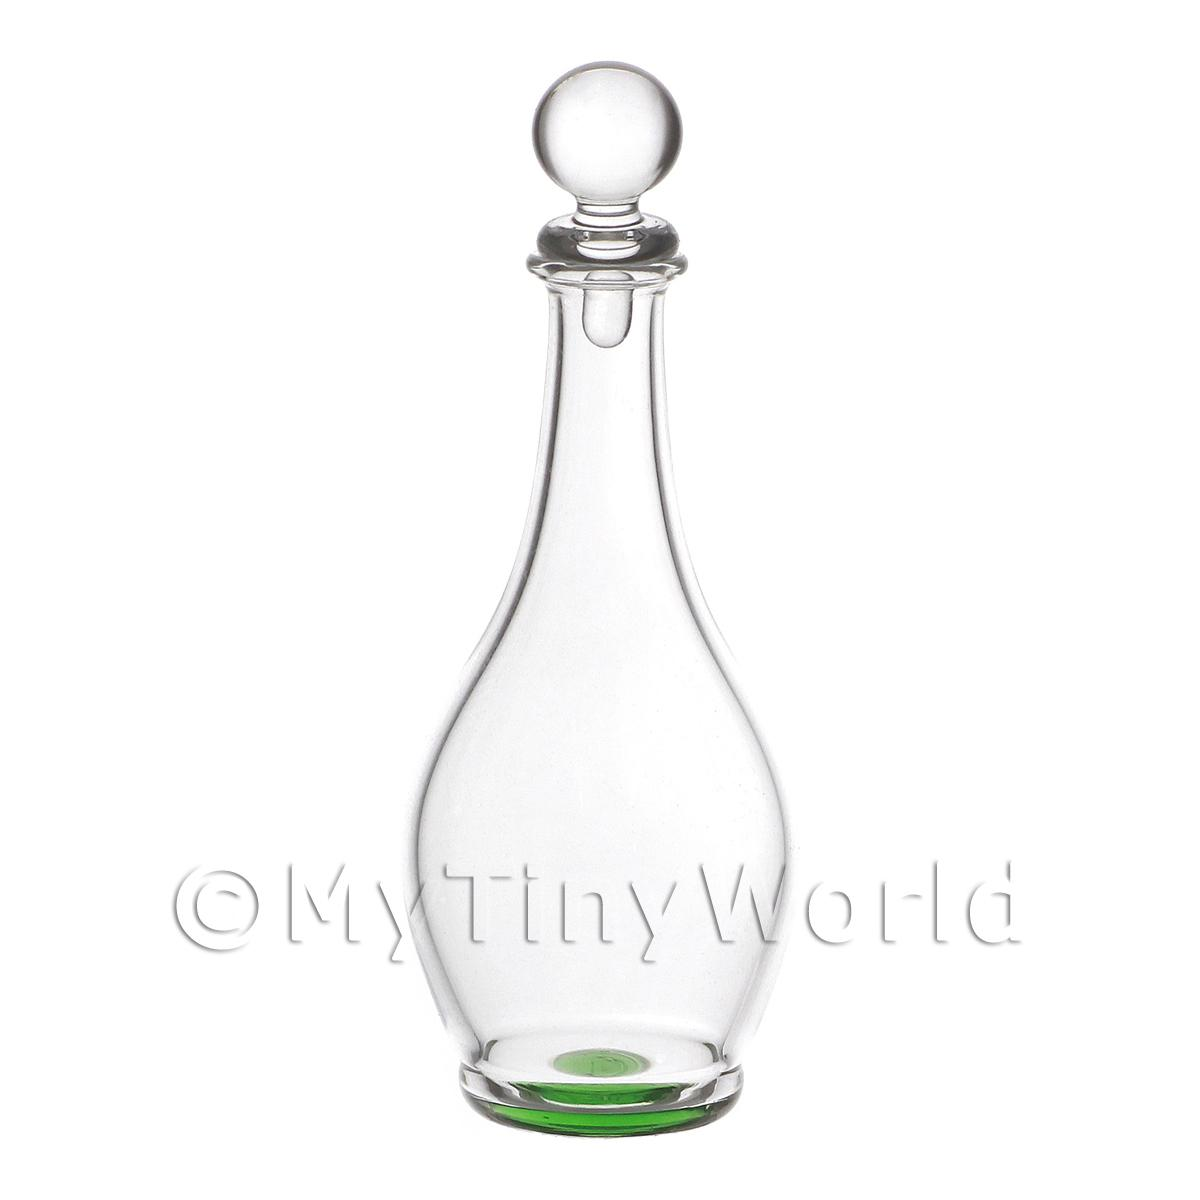 Dolls House Miniature Handmade Green Base Curved Glass Decanter